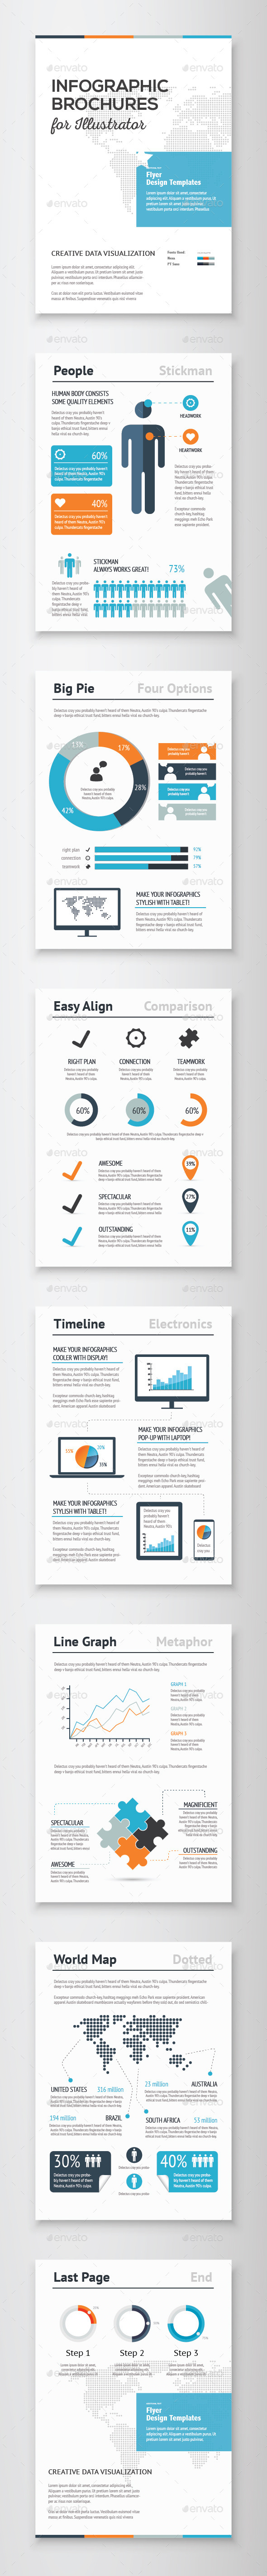 GraphicRiver Infographic Brochure Vector Elements Kit 1 9712014